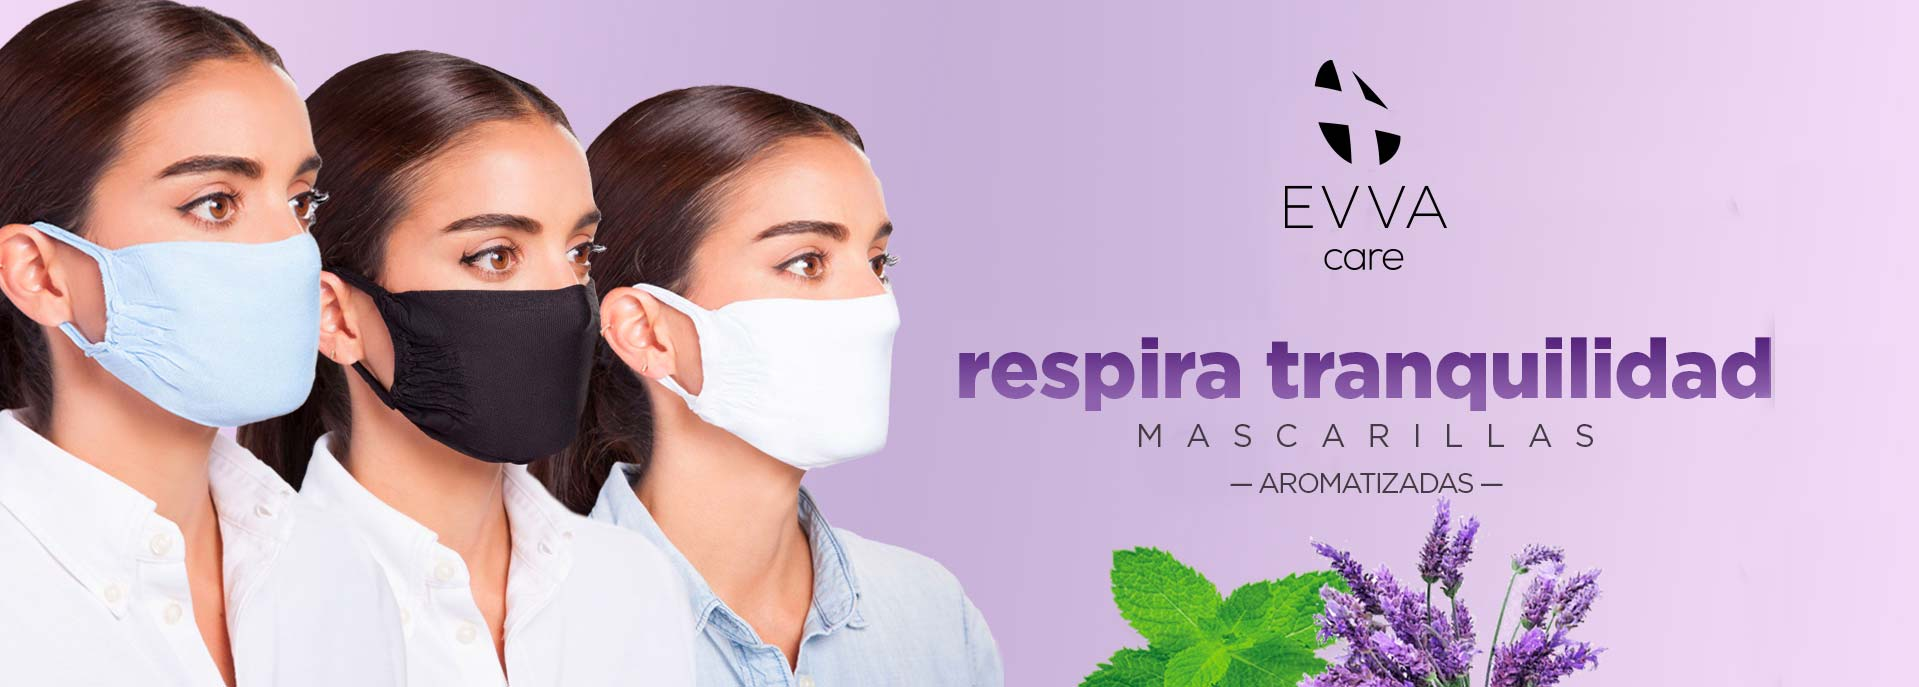 evva-jeans-section-banner-mascarillas-tranquilidad